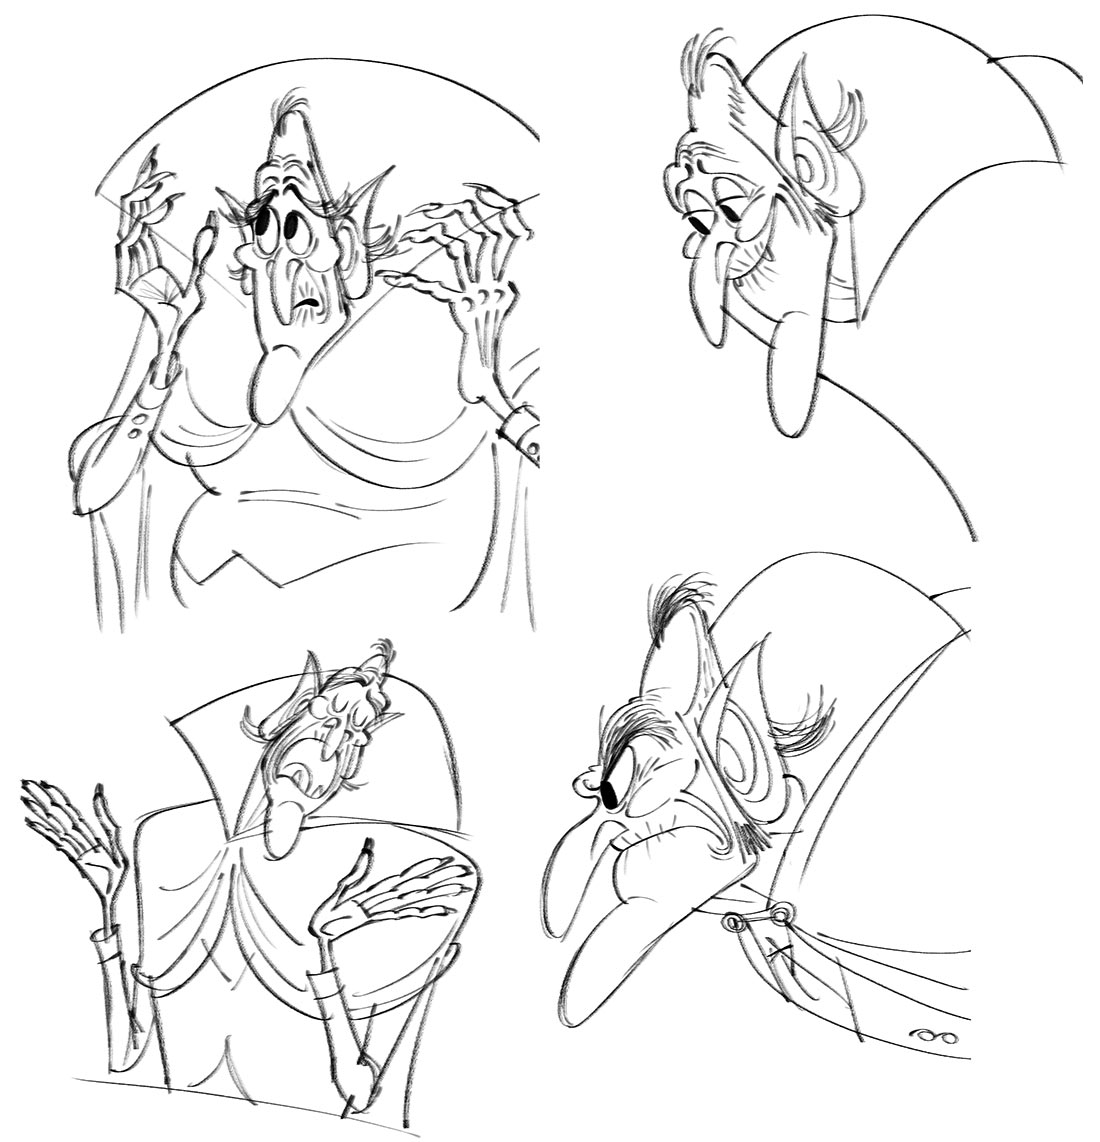 Character concepts for Vlad by Craig Kellman.